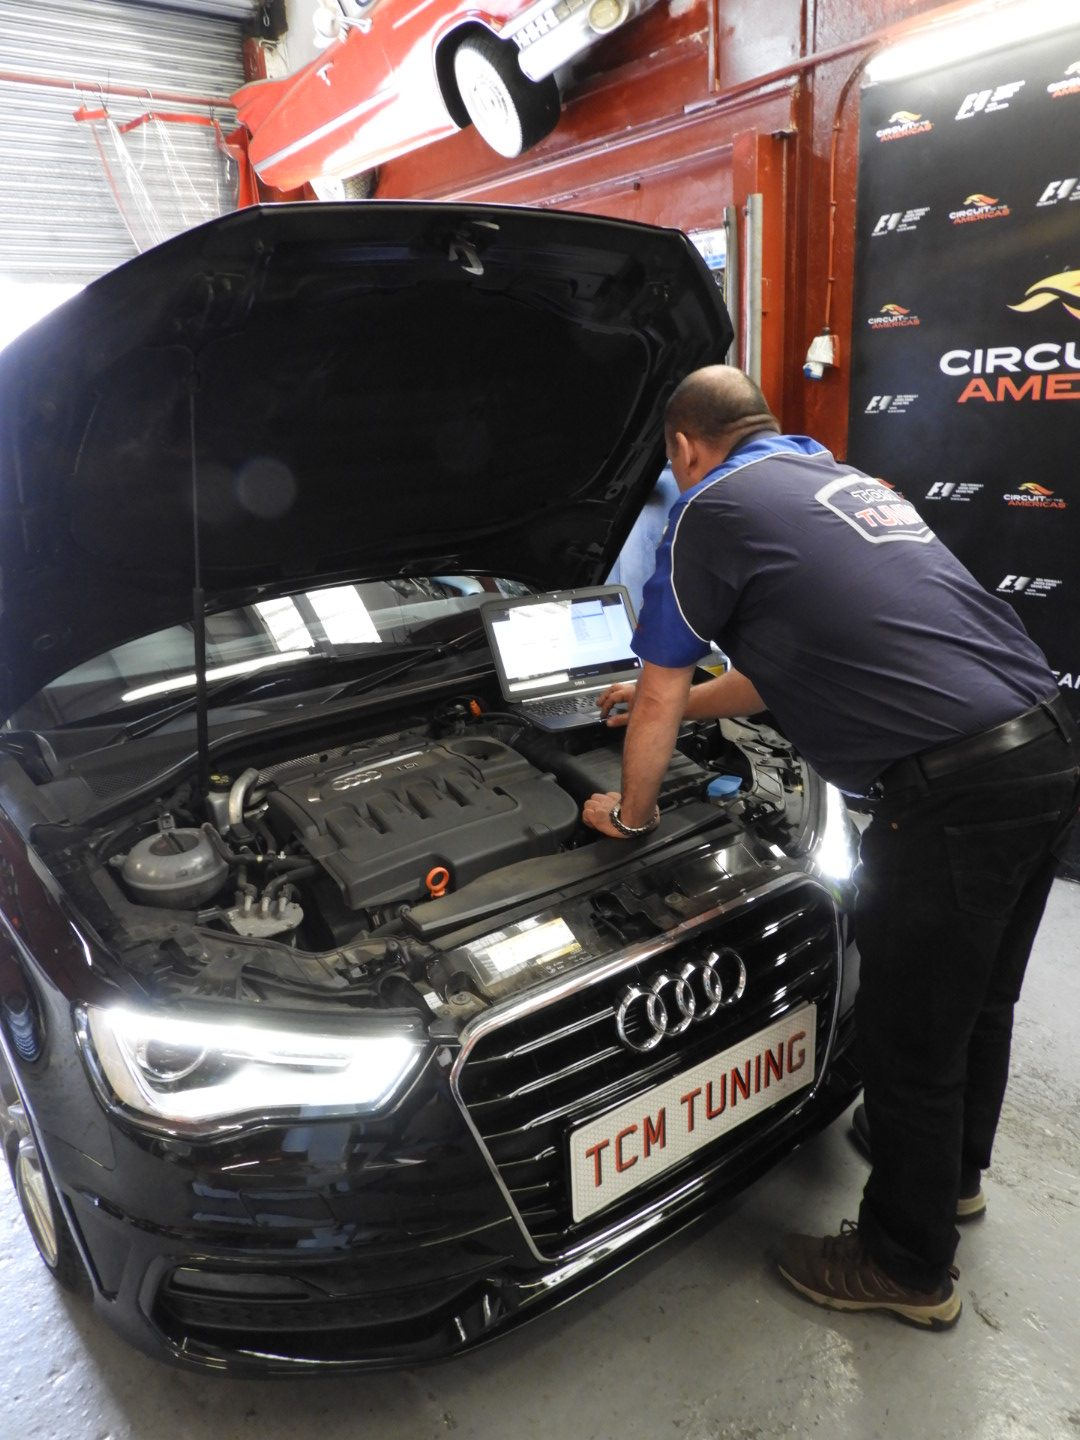 tcm tuning experts doing car diagnostic in brighton